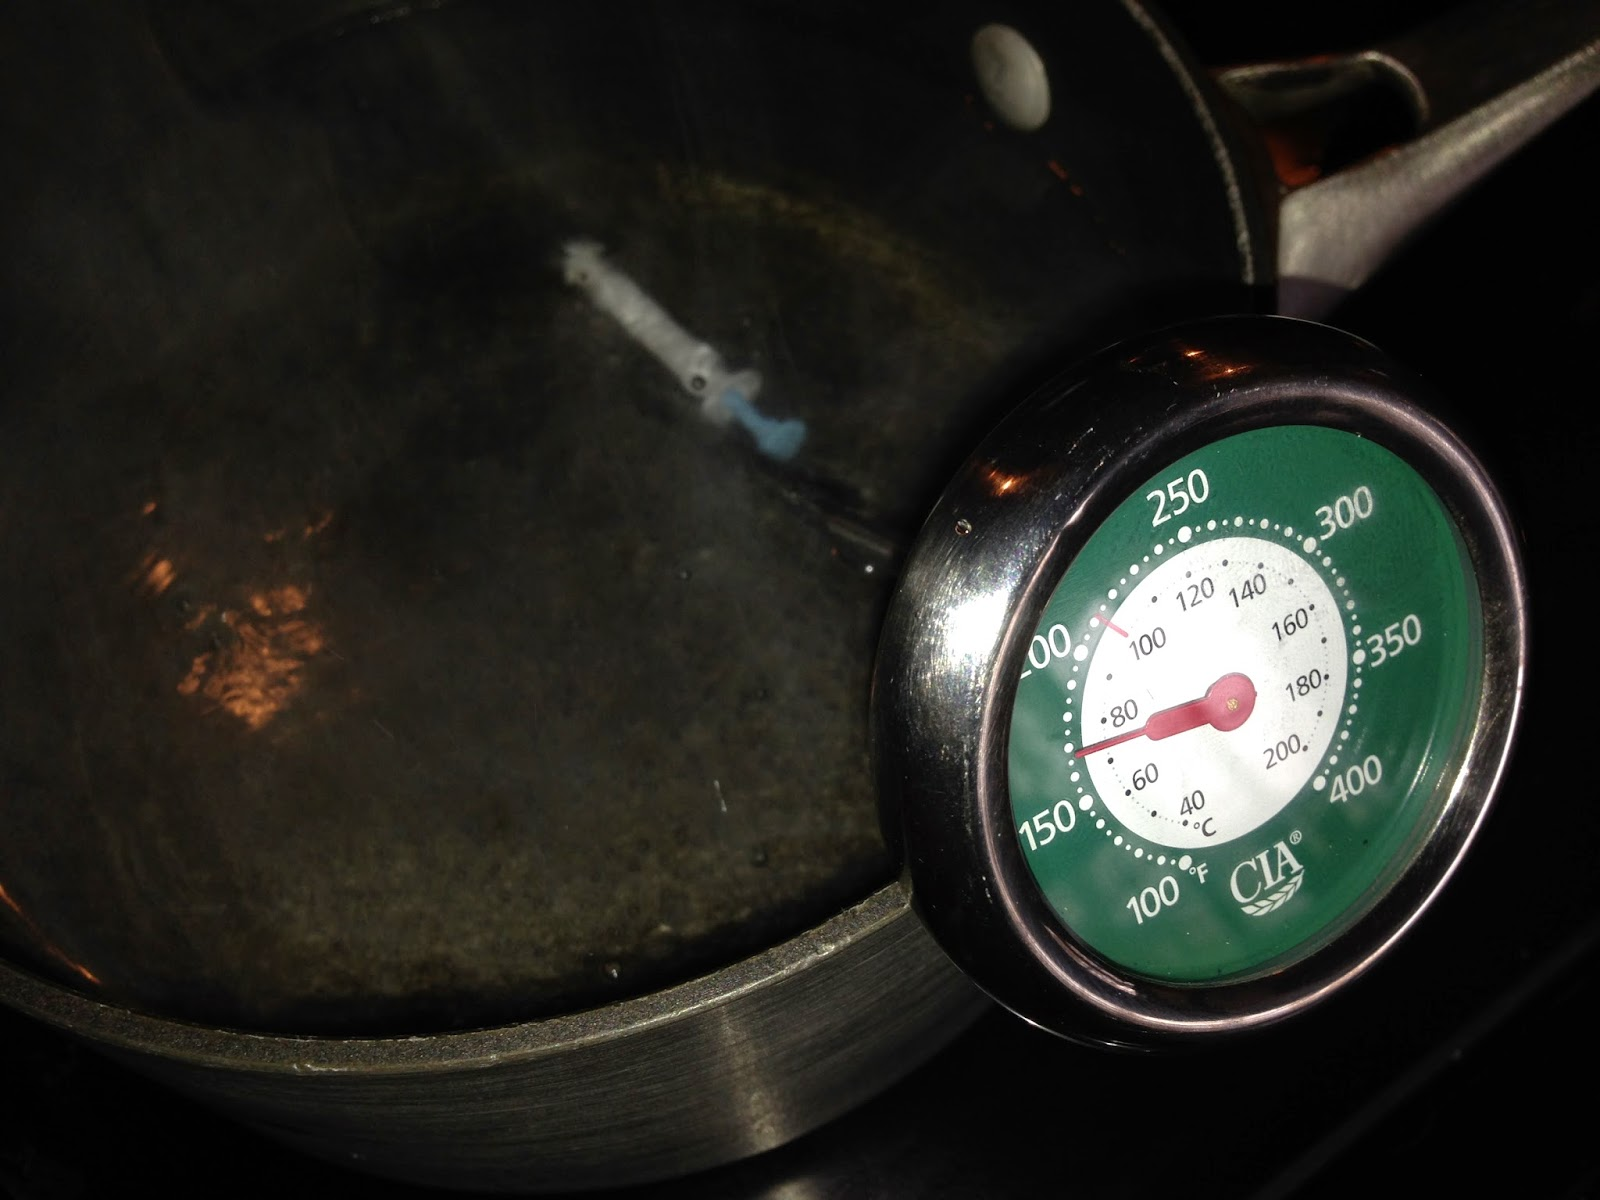 Our turkey timer has activated and our water is fully pasteurized!